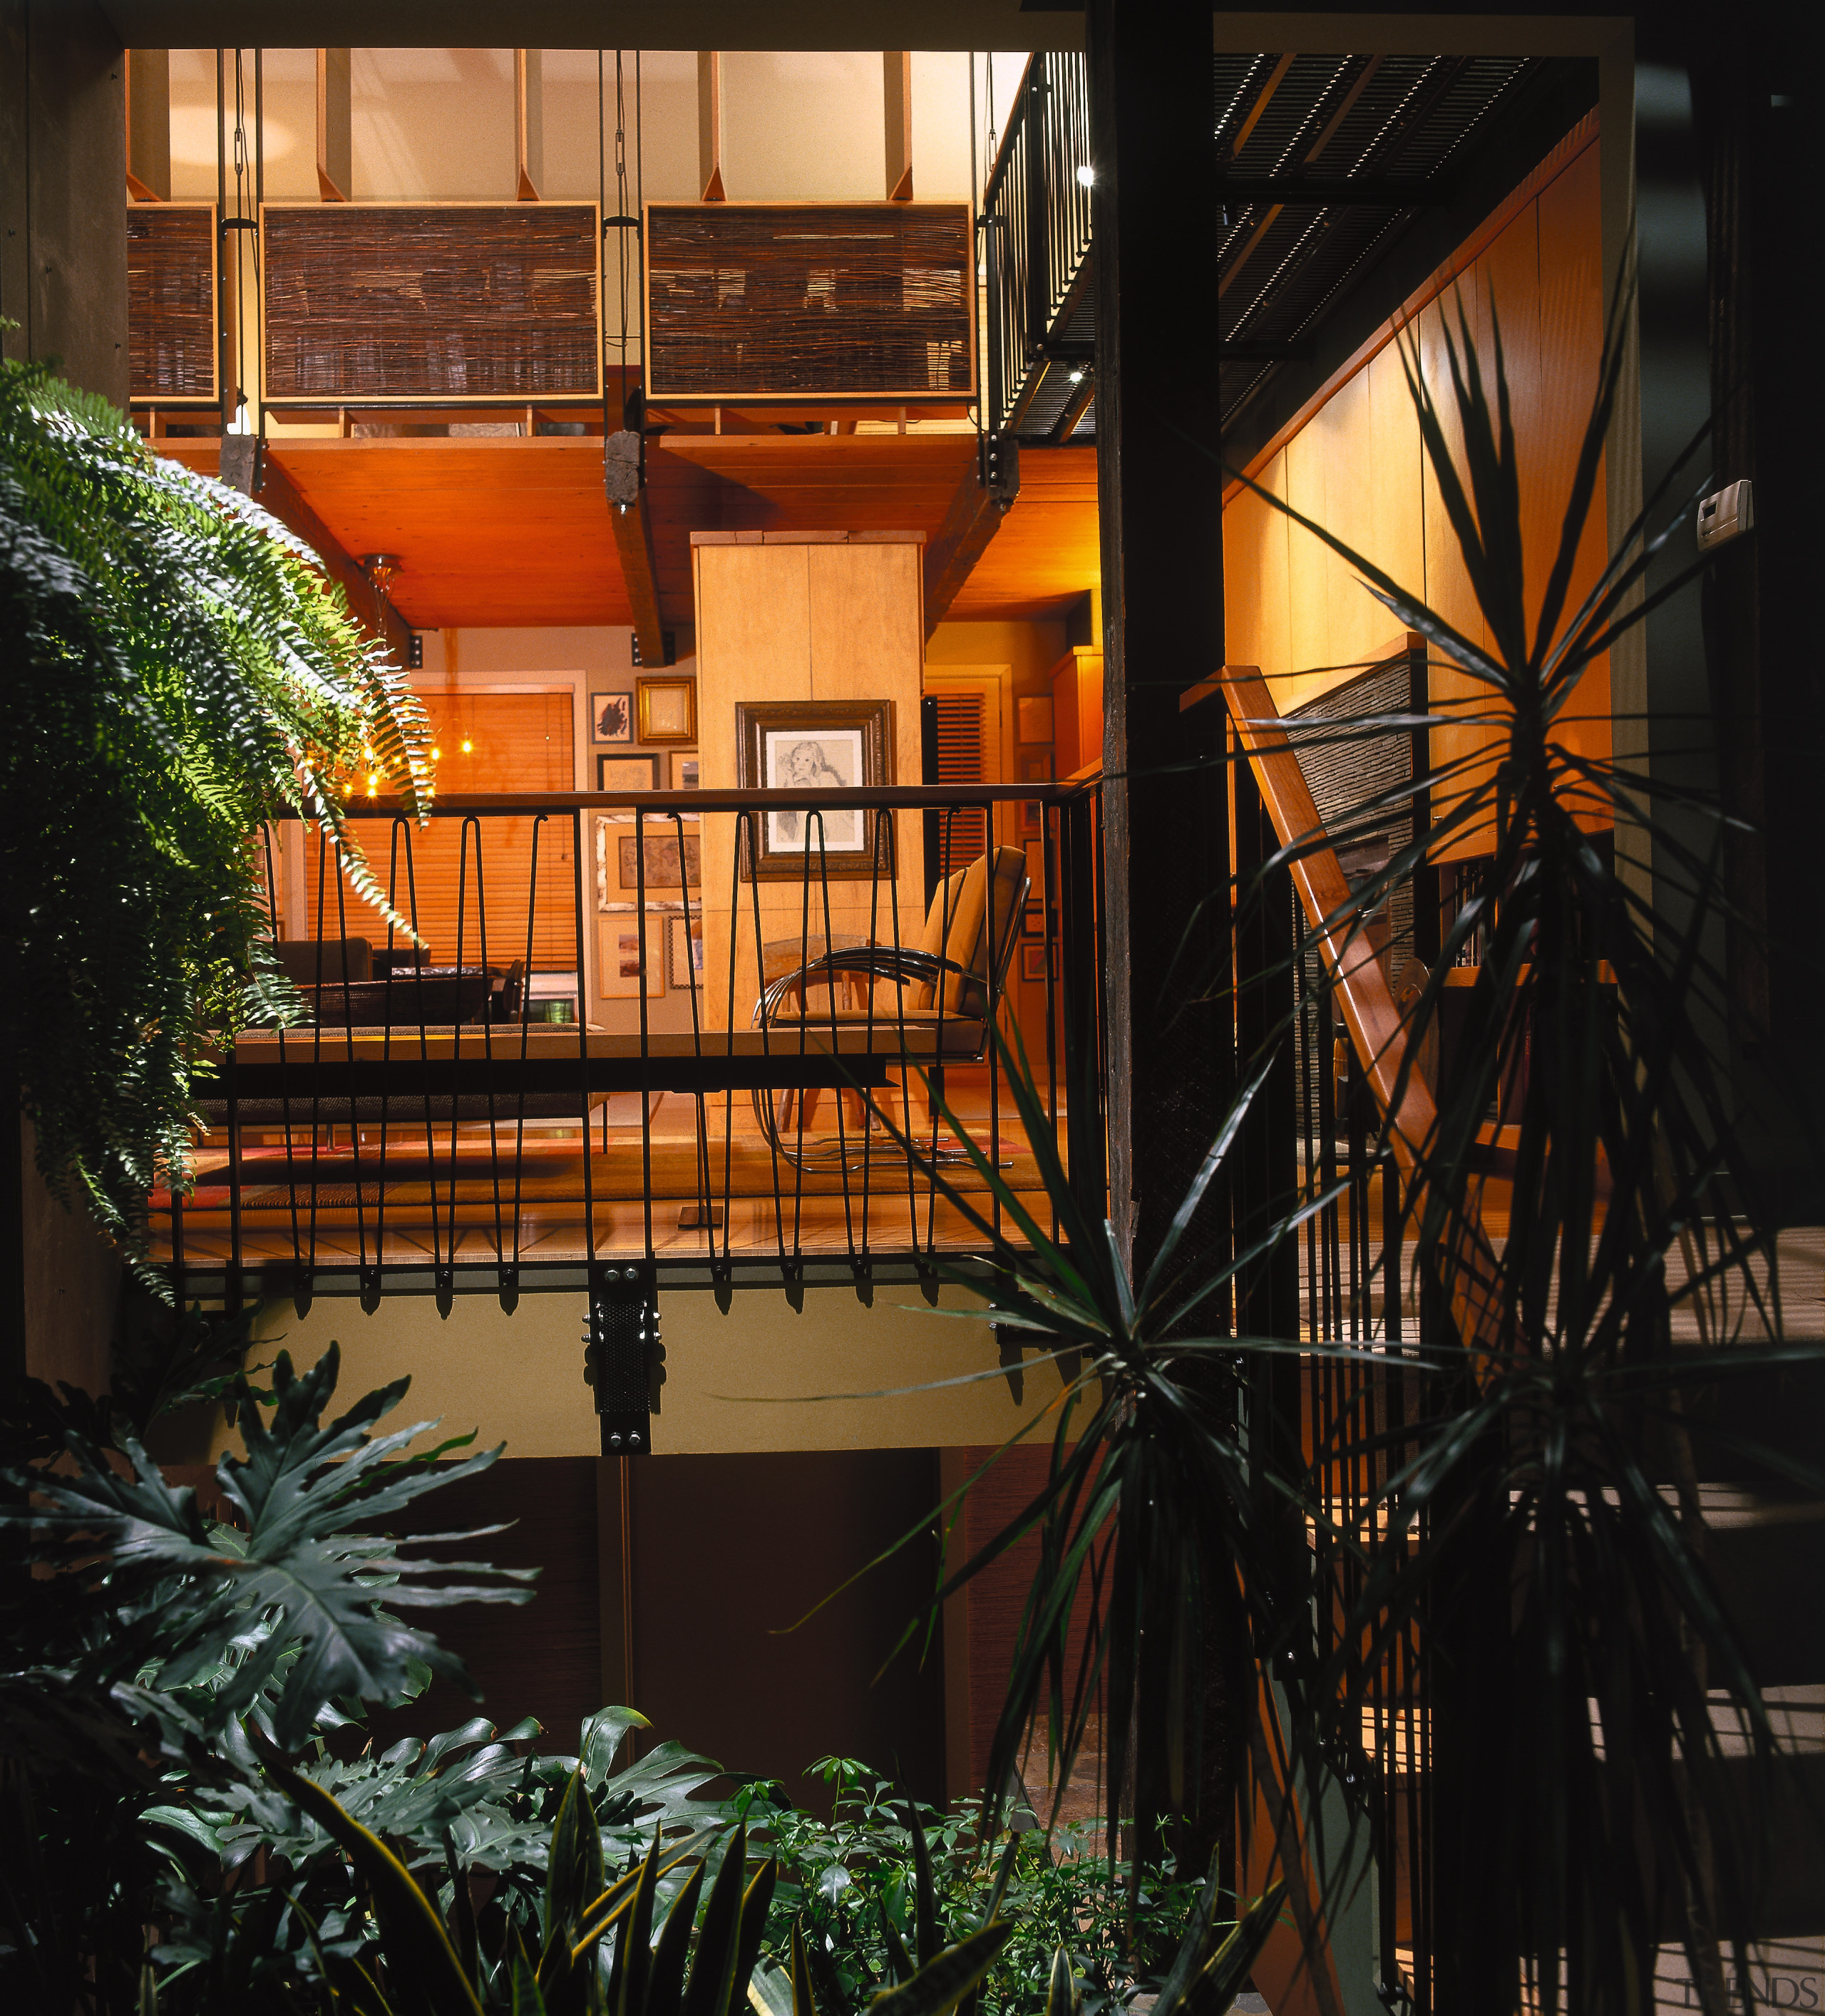 View of the open courtyard and idoor garden, architecture, balcony, building, facade, home, house, window, wood, black